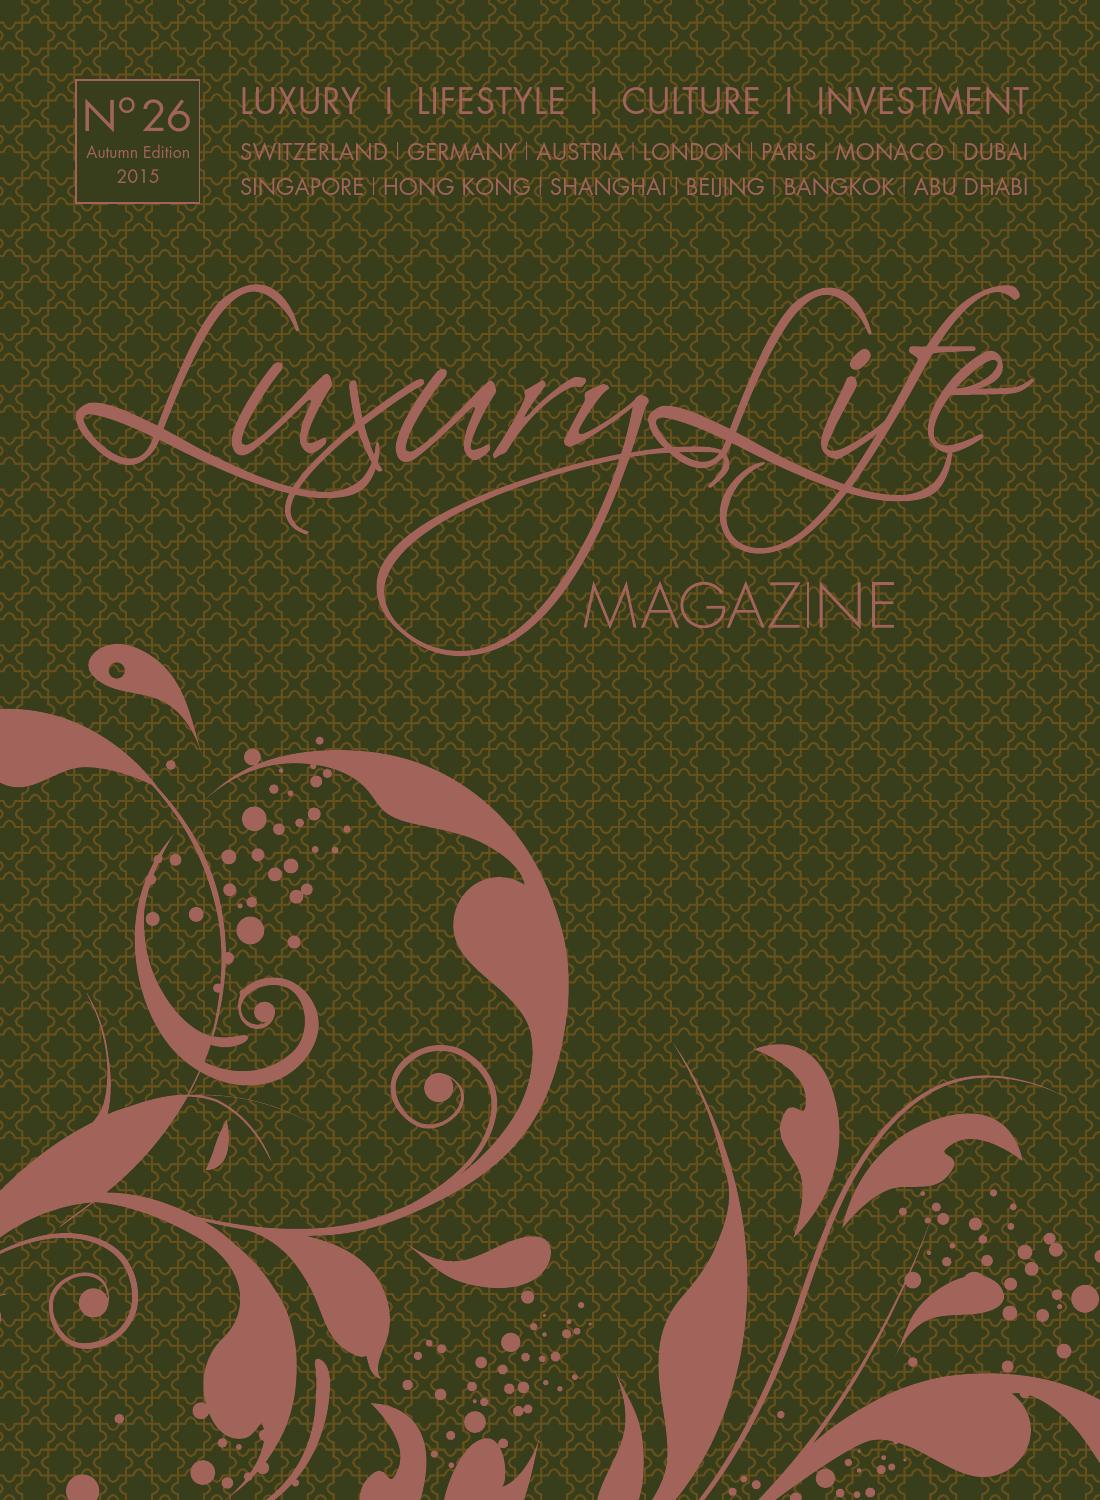 Luxury Life MAGAZINE by Luxury Life MAGAZINE GmbH.